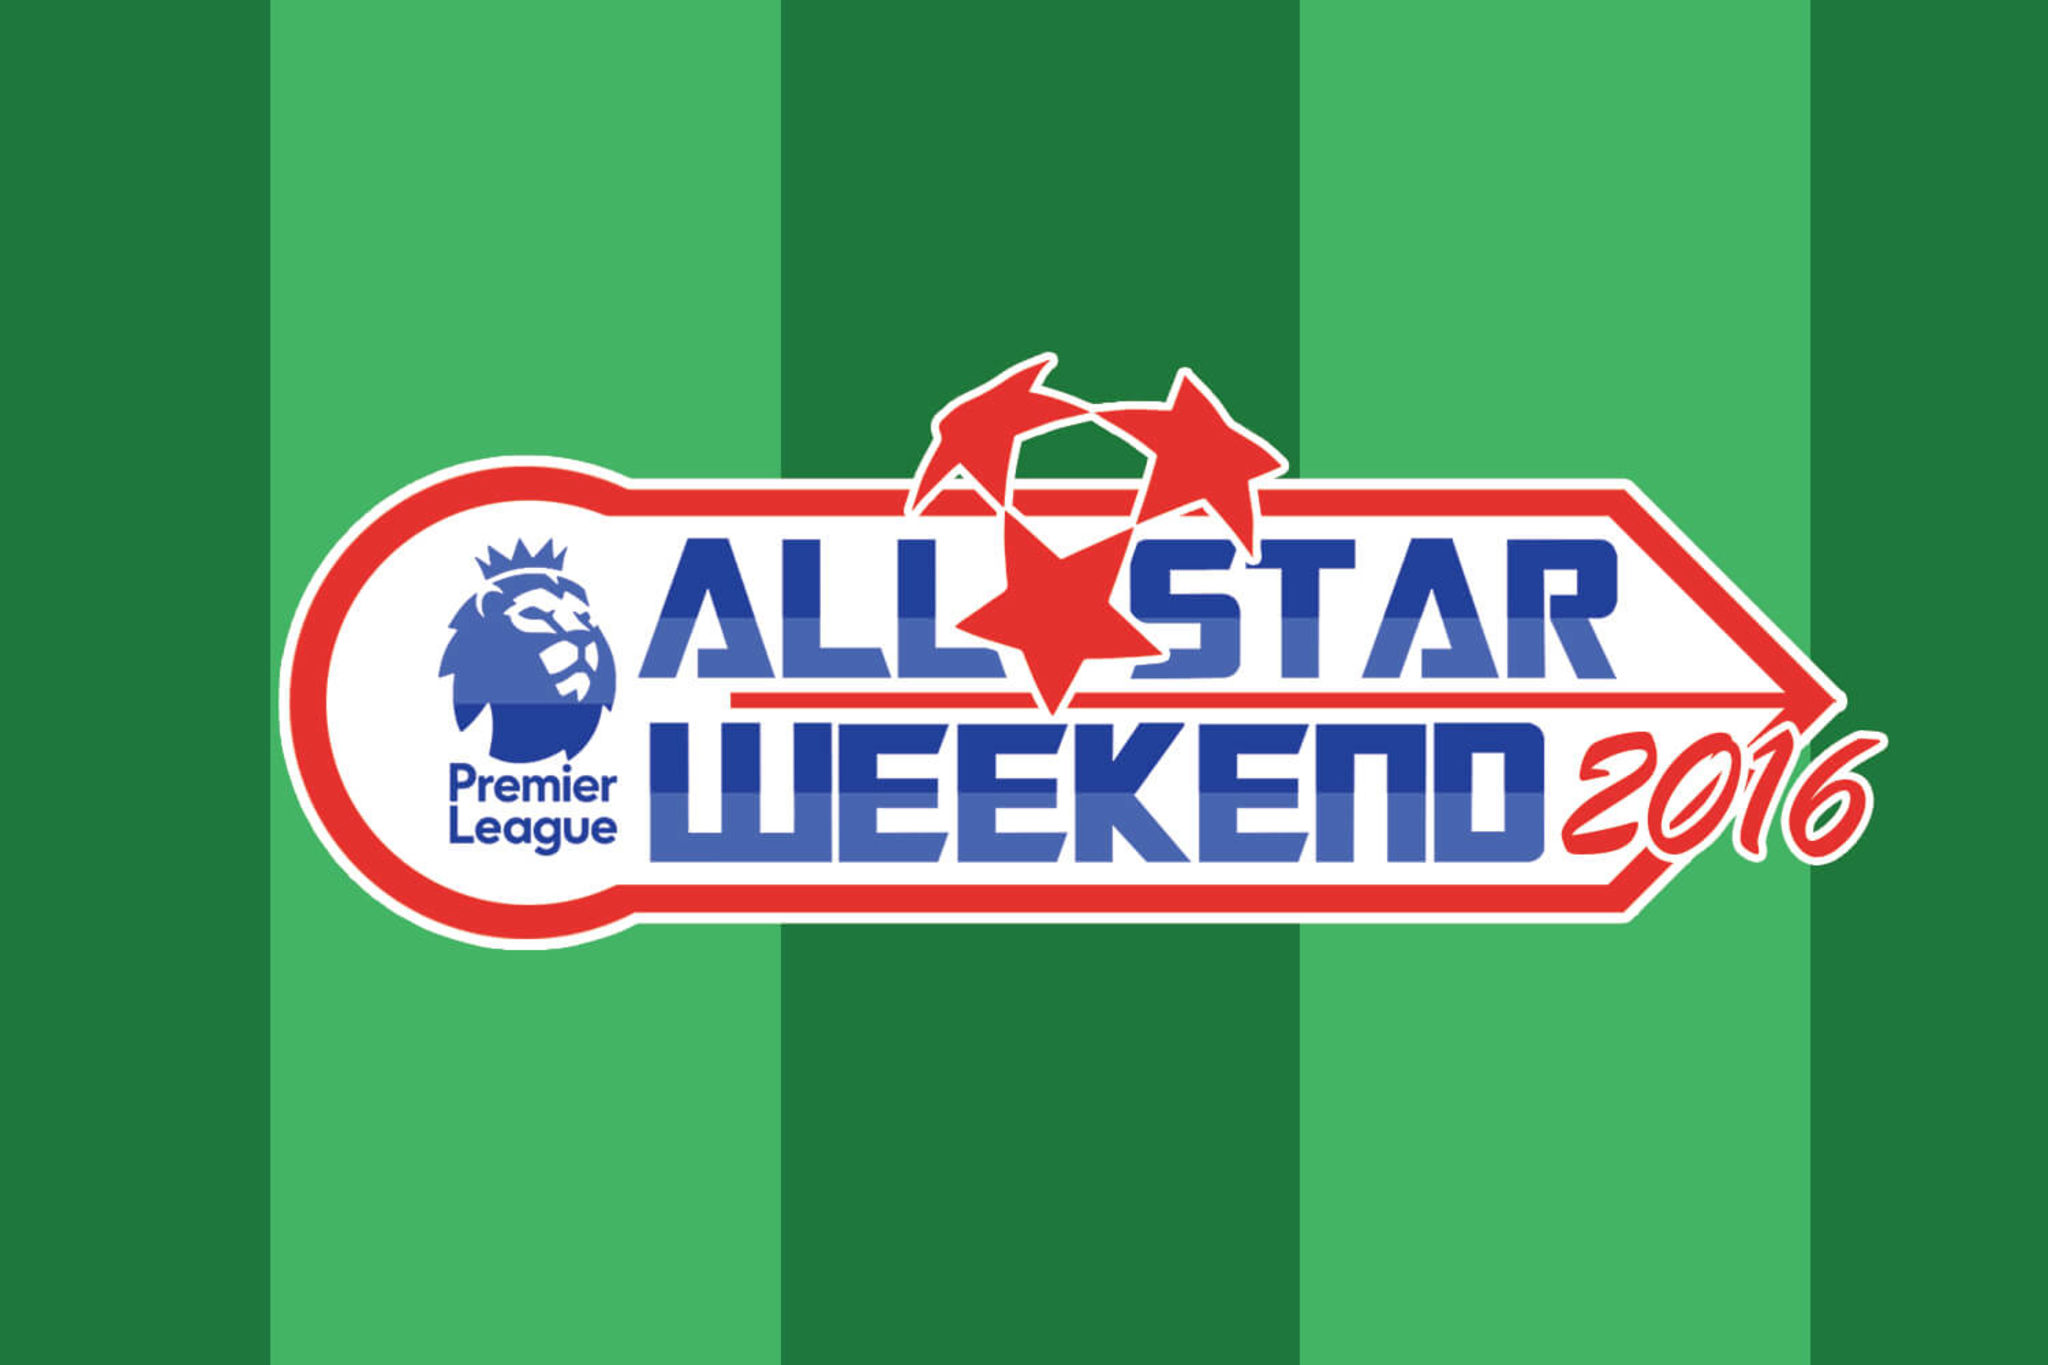 Premier League All-Star Weekend